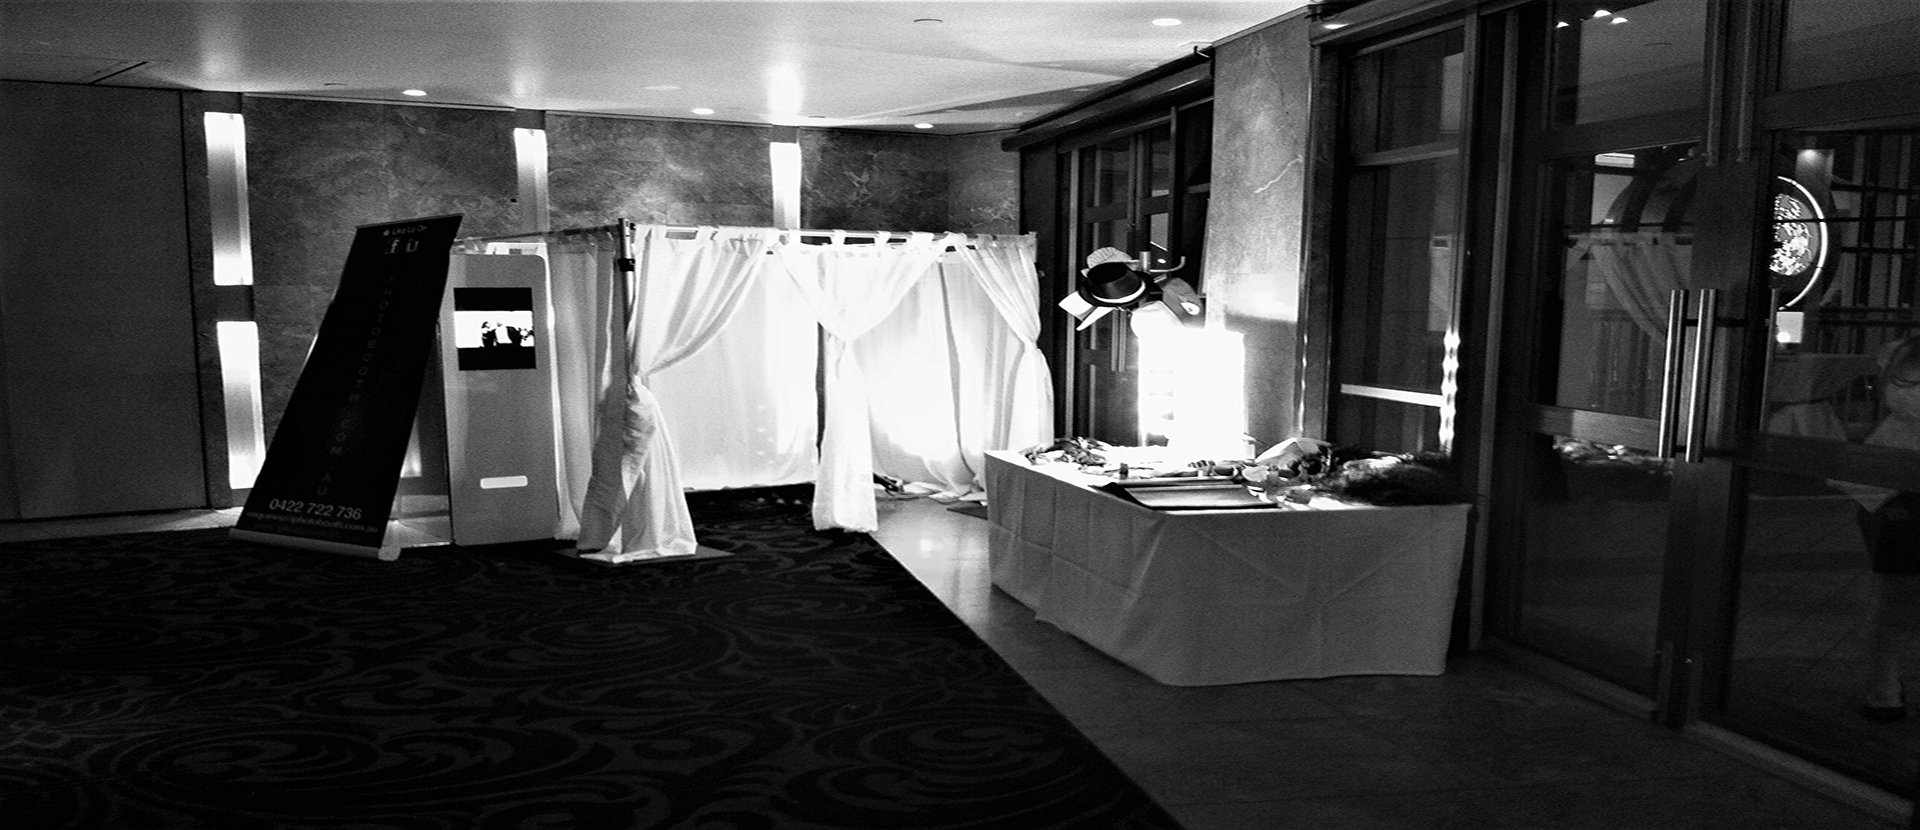 setup for an open photo booth in Sydney.